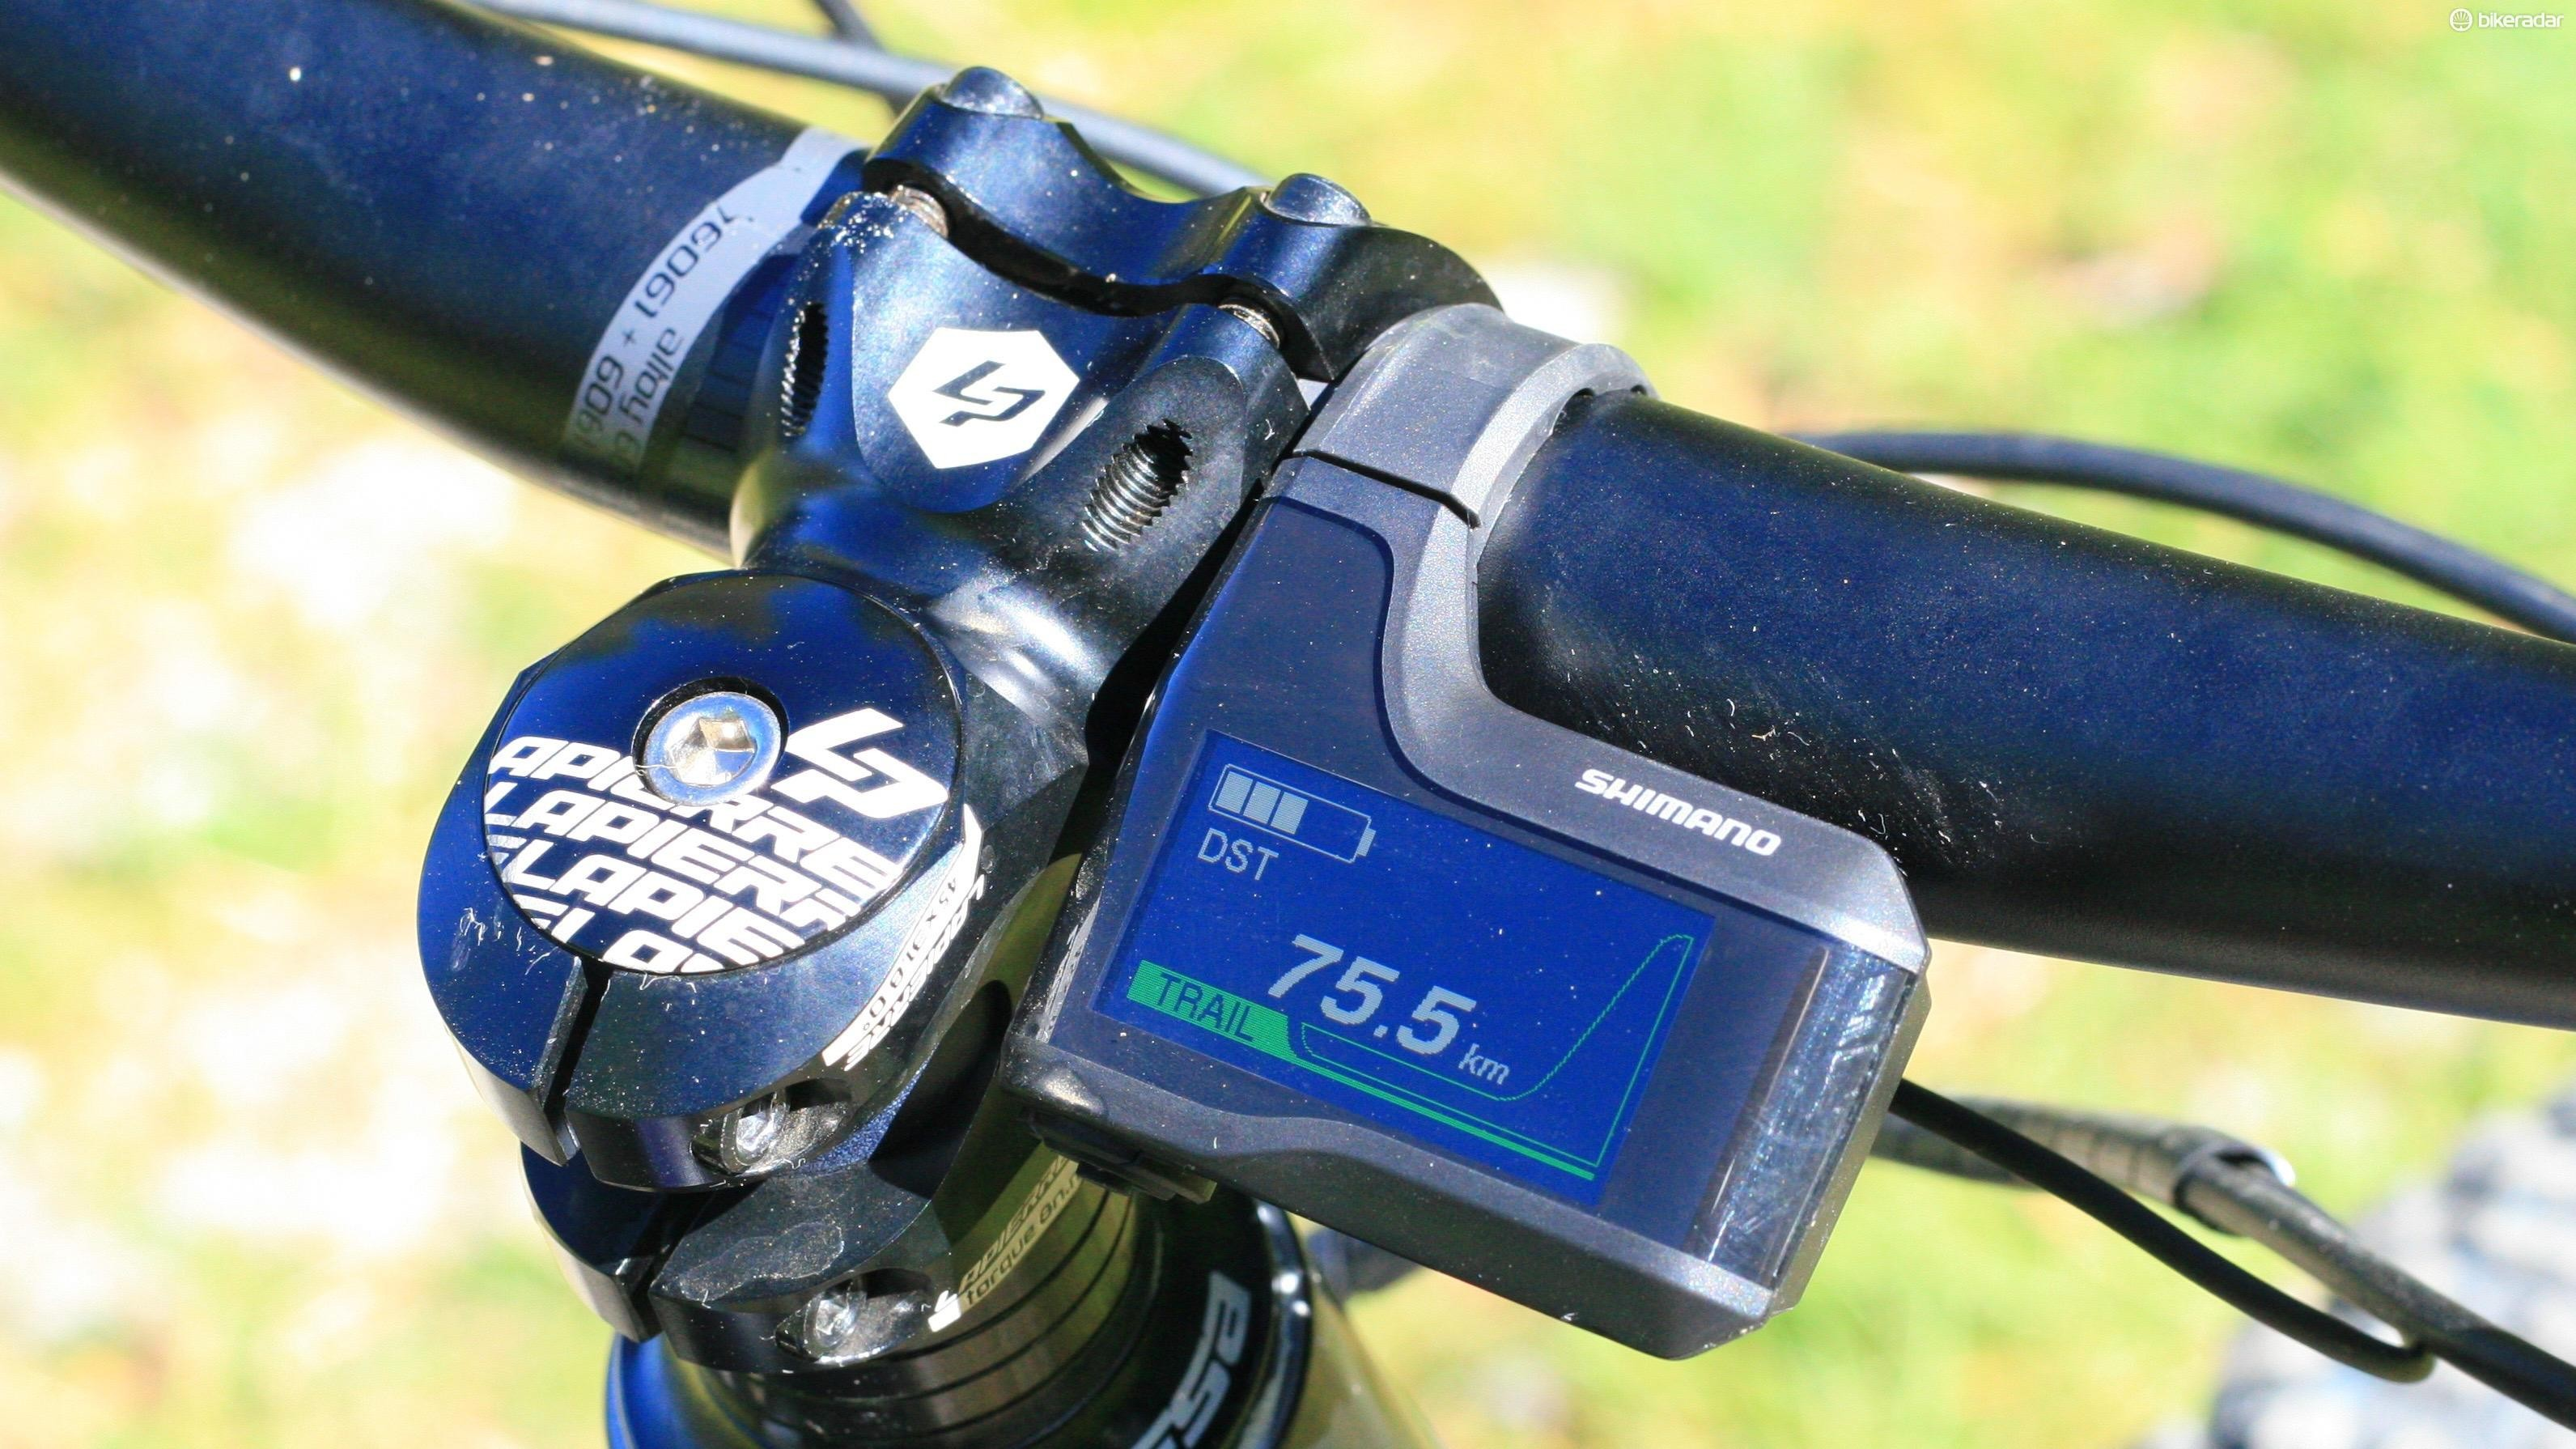 The Shimano Steps display is super easy to read, thanks to its bright display and colour-coded mode information